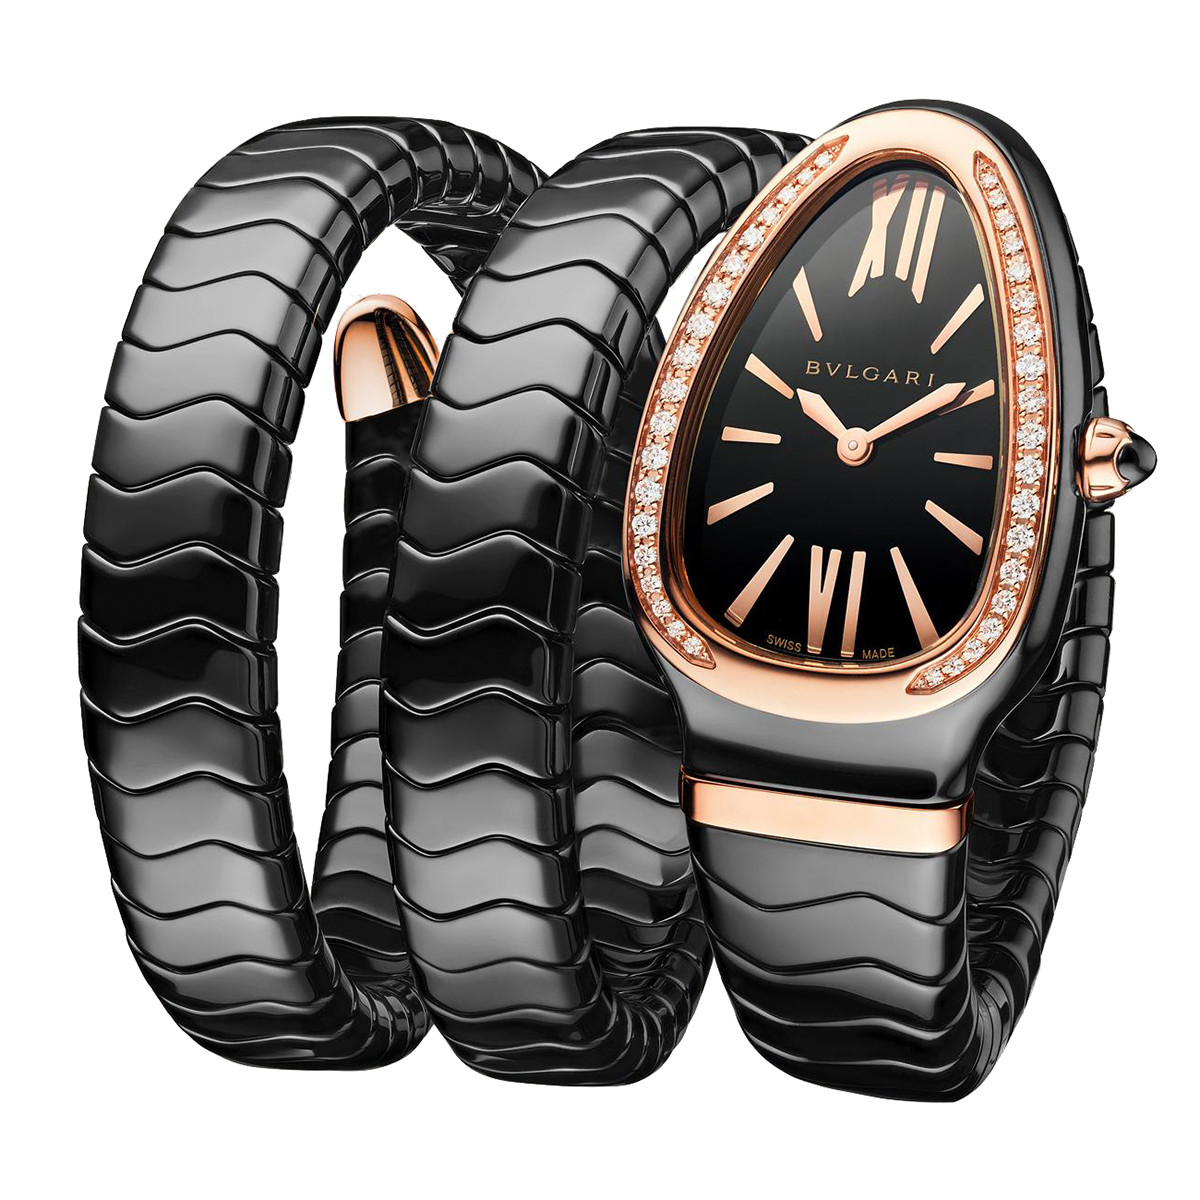 Serpenti Spiga Black Ceramic & Rose Gold (102885)